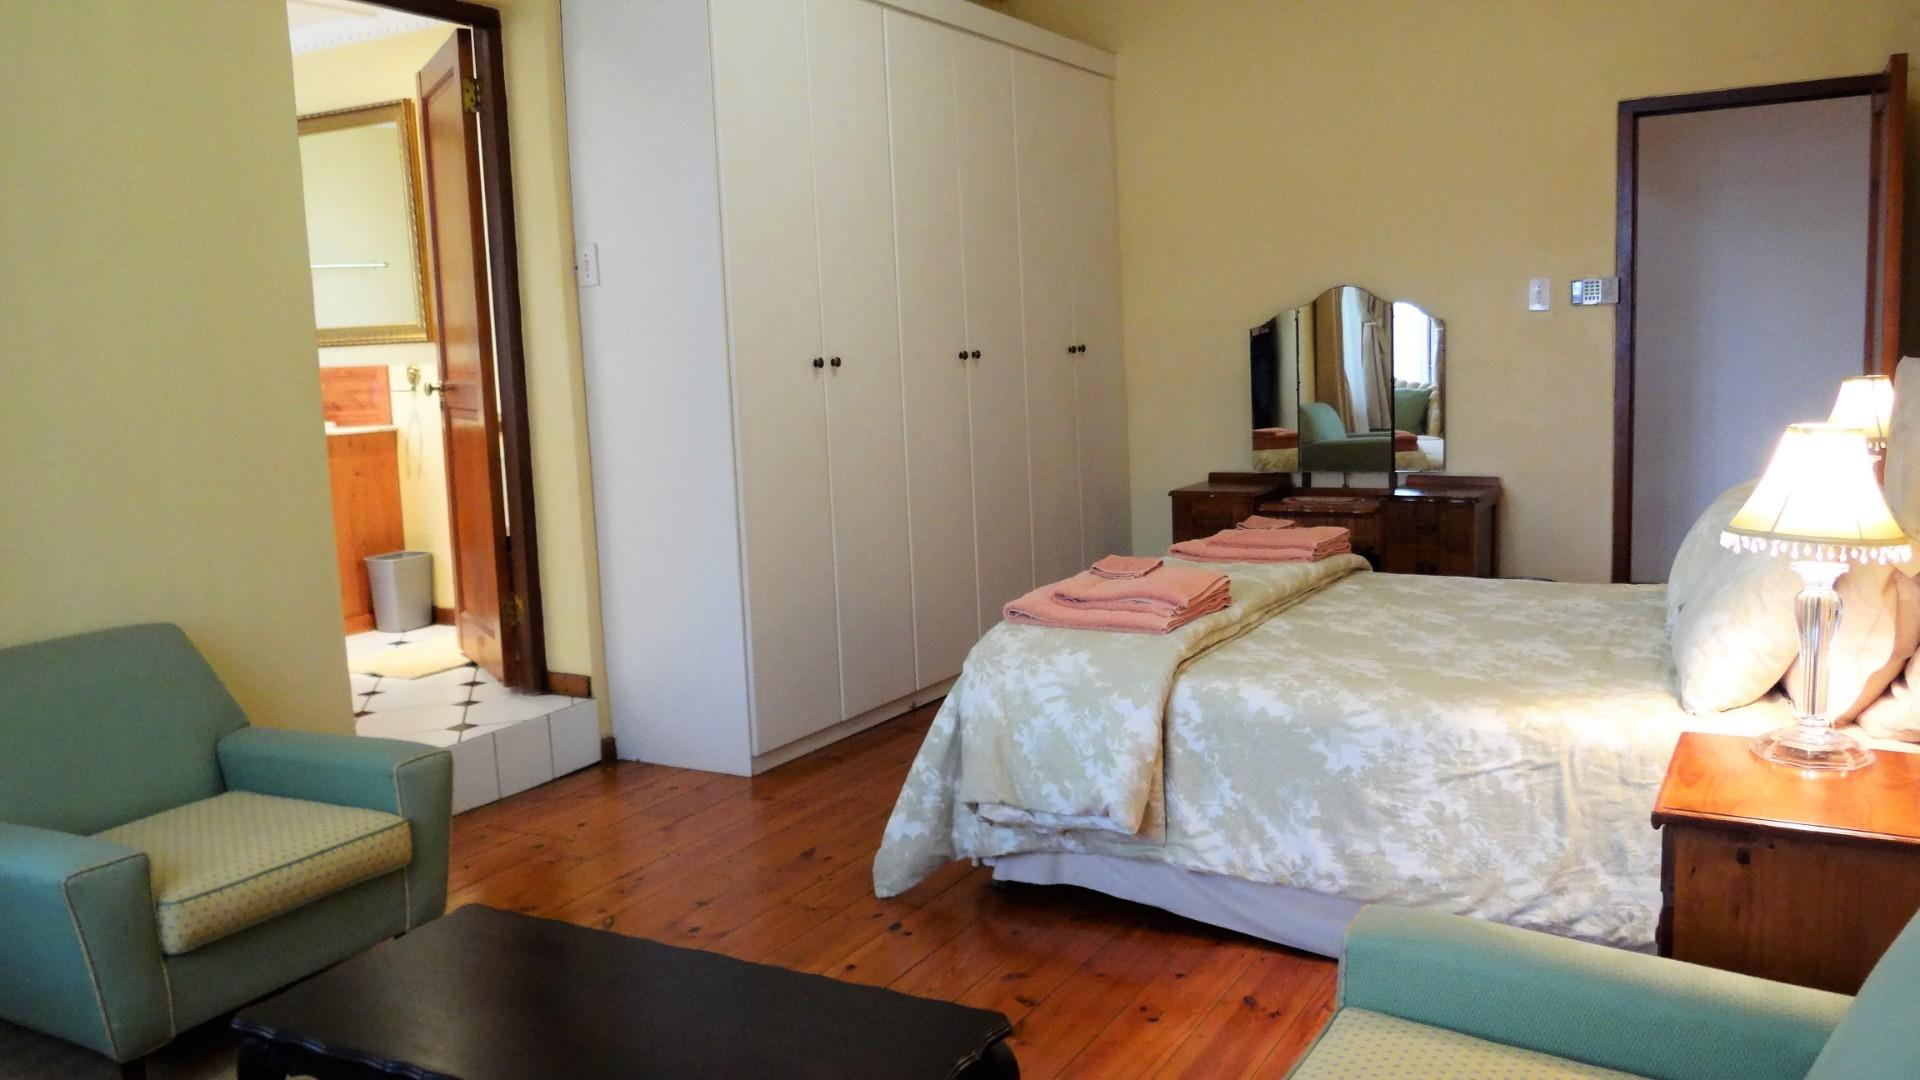 5 Bedroom House For Sale in Brooklyn